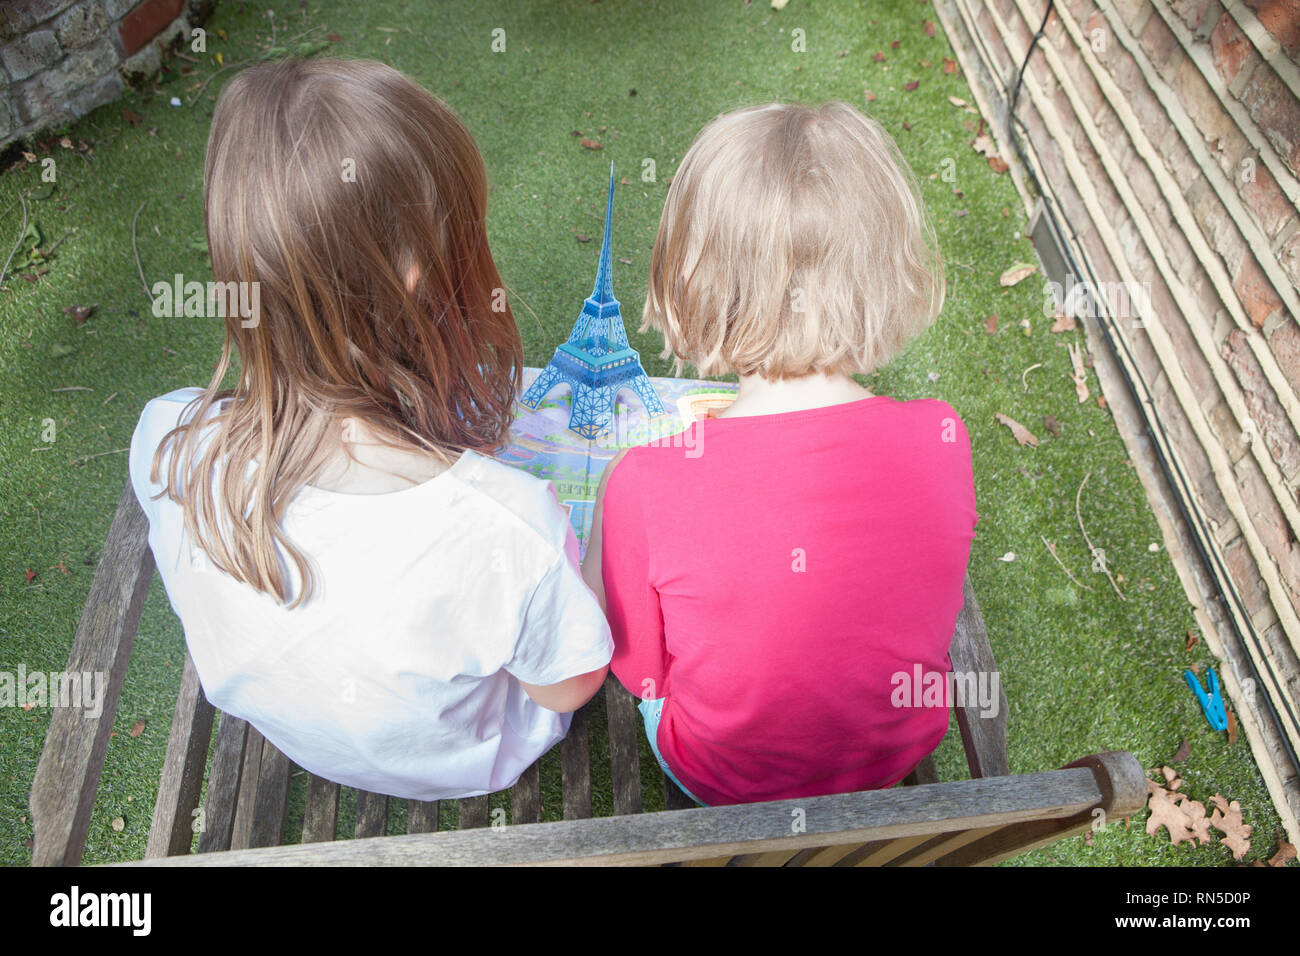 two young girls reading a pop up book on Paris in their garden Stock Photo